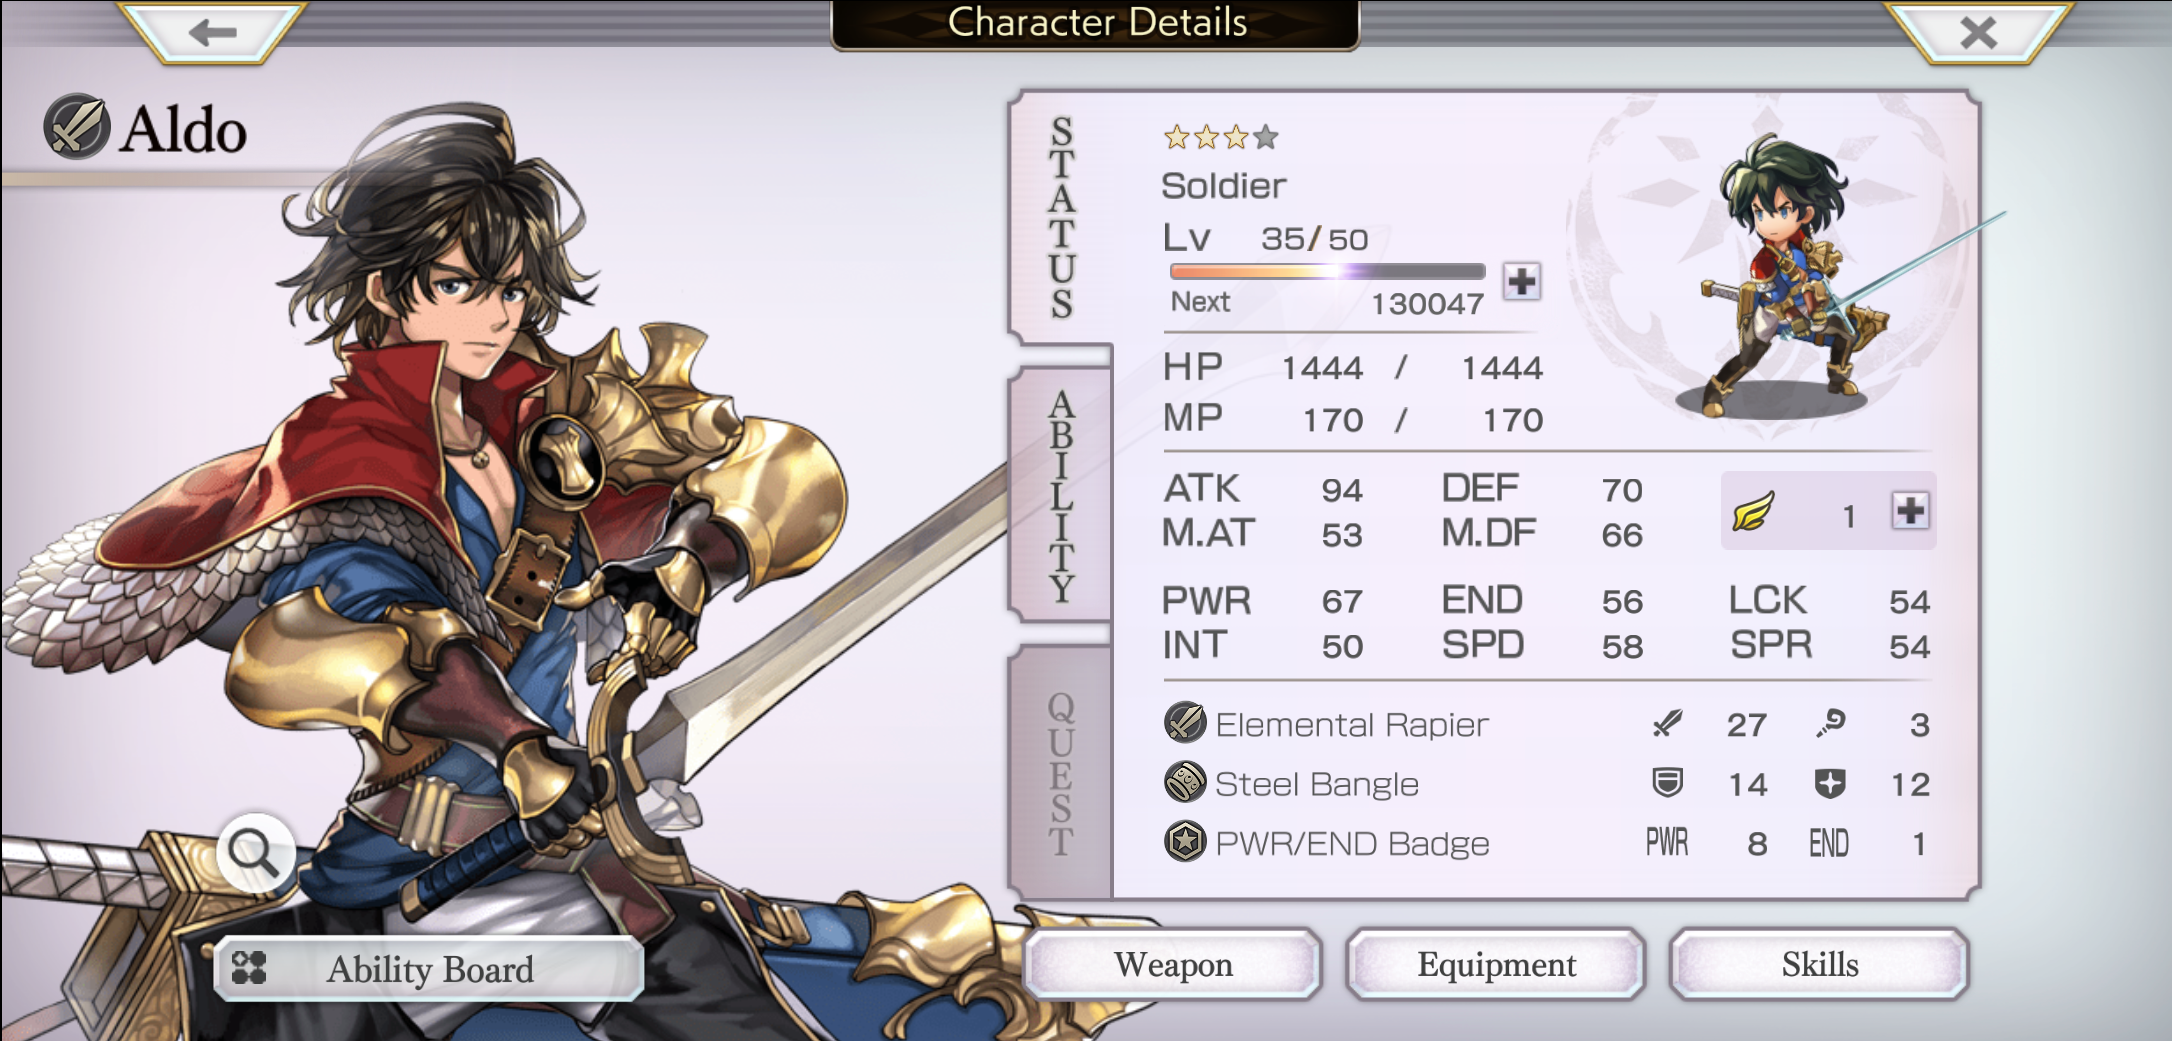 Character Details Screen for the protagonist Aldo. It shows his various stats along with his equipment.